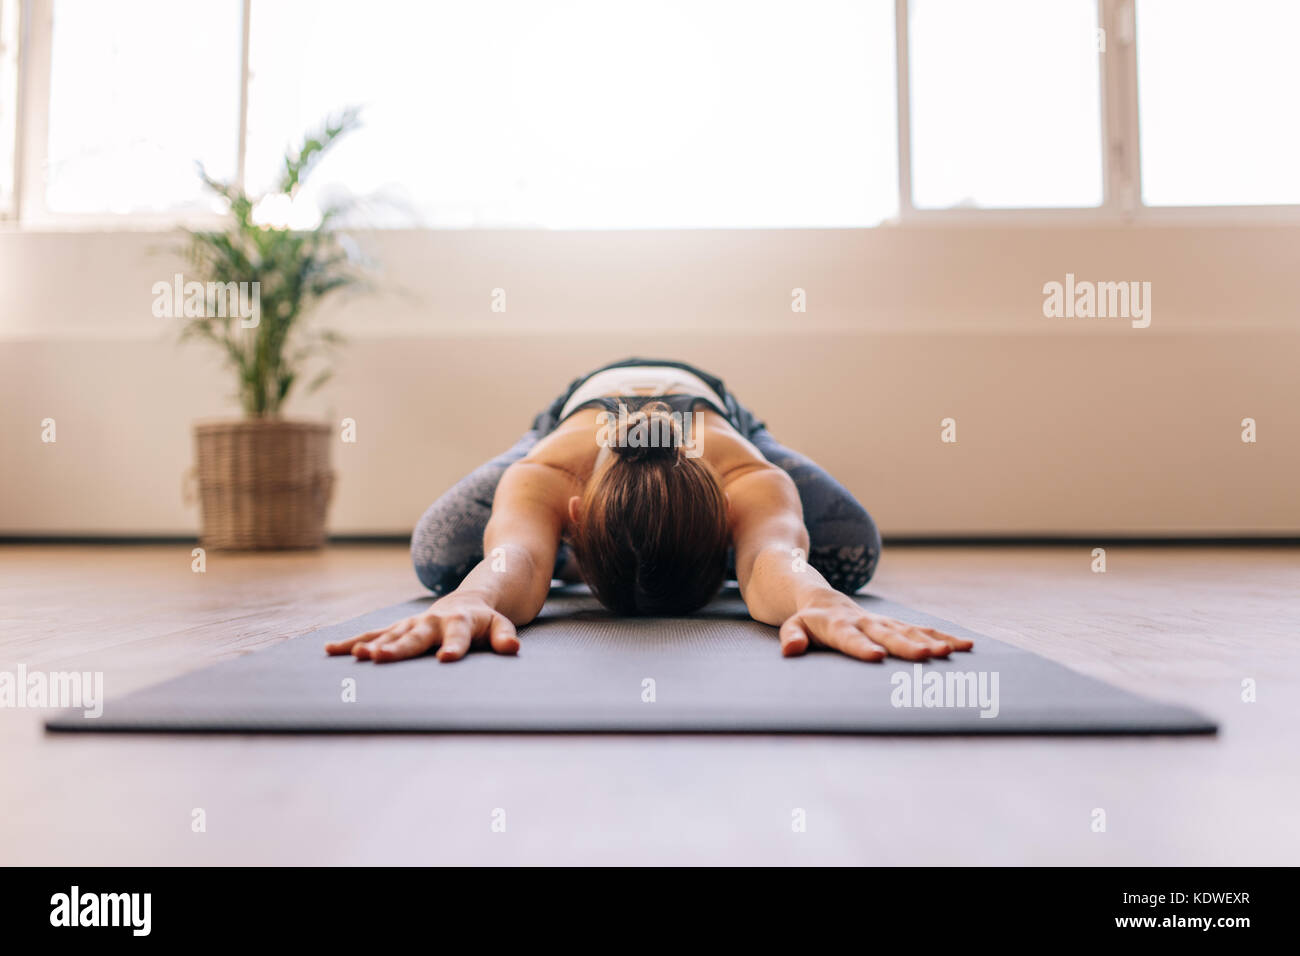 Fit woman performing child yoga pose at gym class. Fitness woman working out on yoga mat indoors. Stock Photo